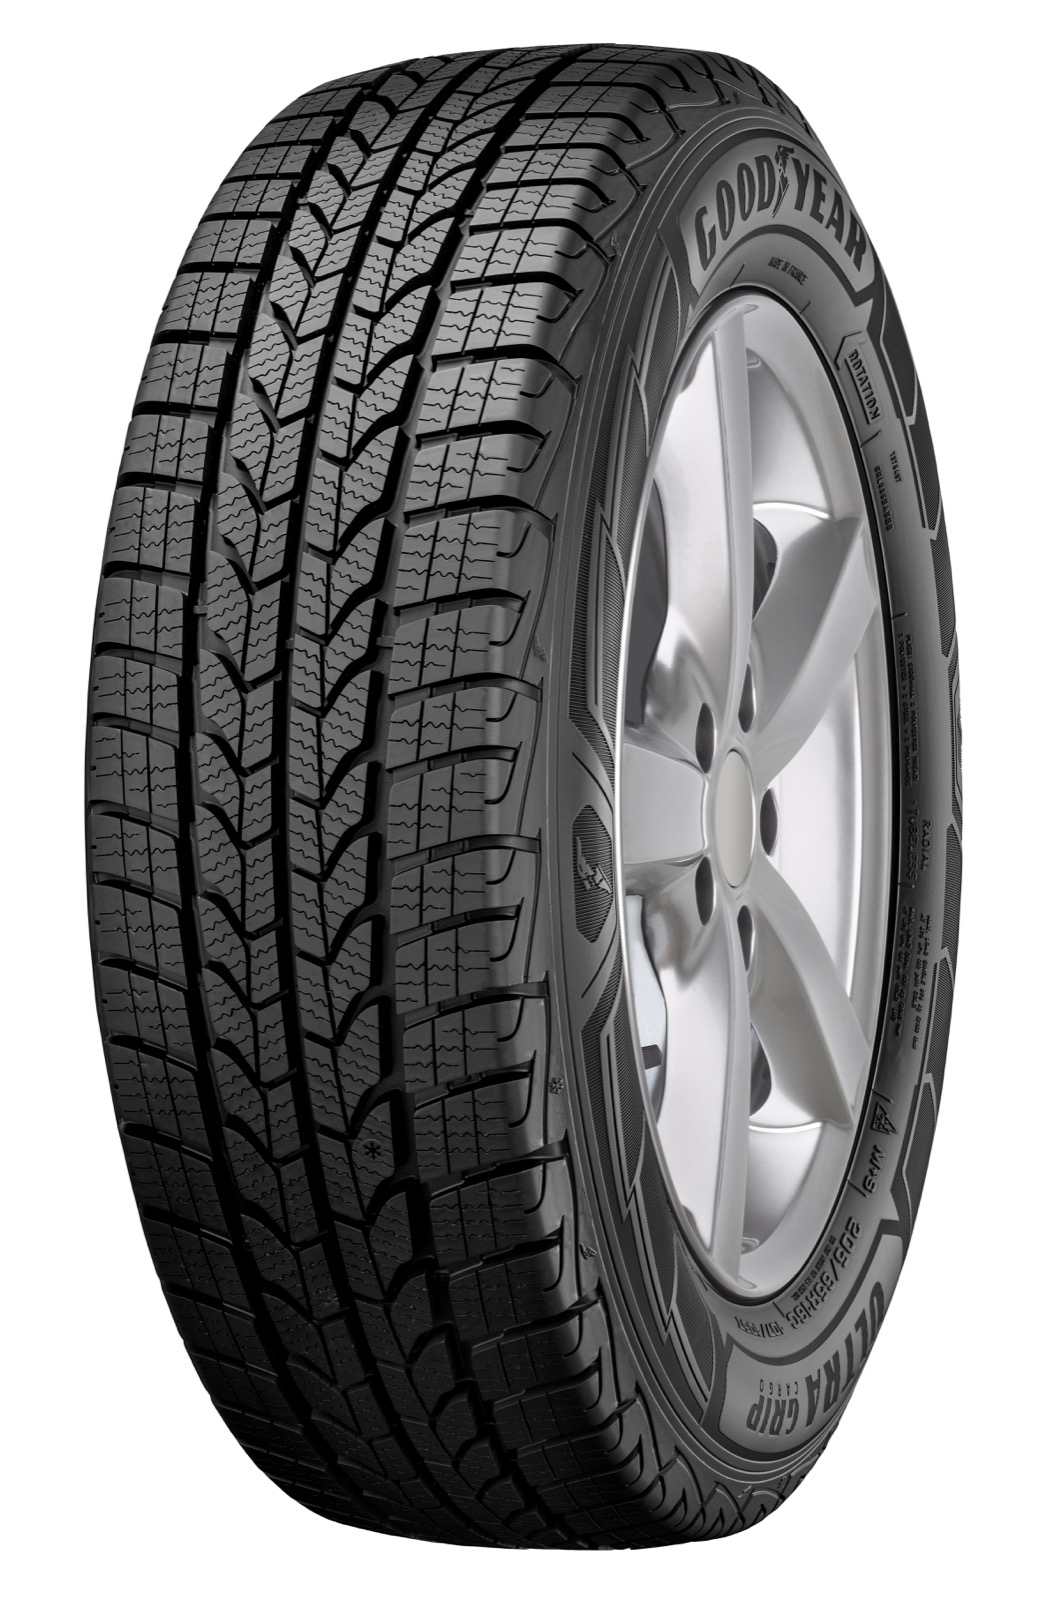 Ultra Grip Cargo Ly4814 00 205 65r16c View 1 Gy On Top.jpg